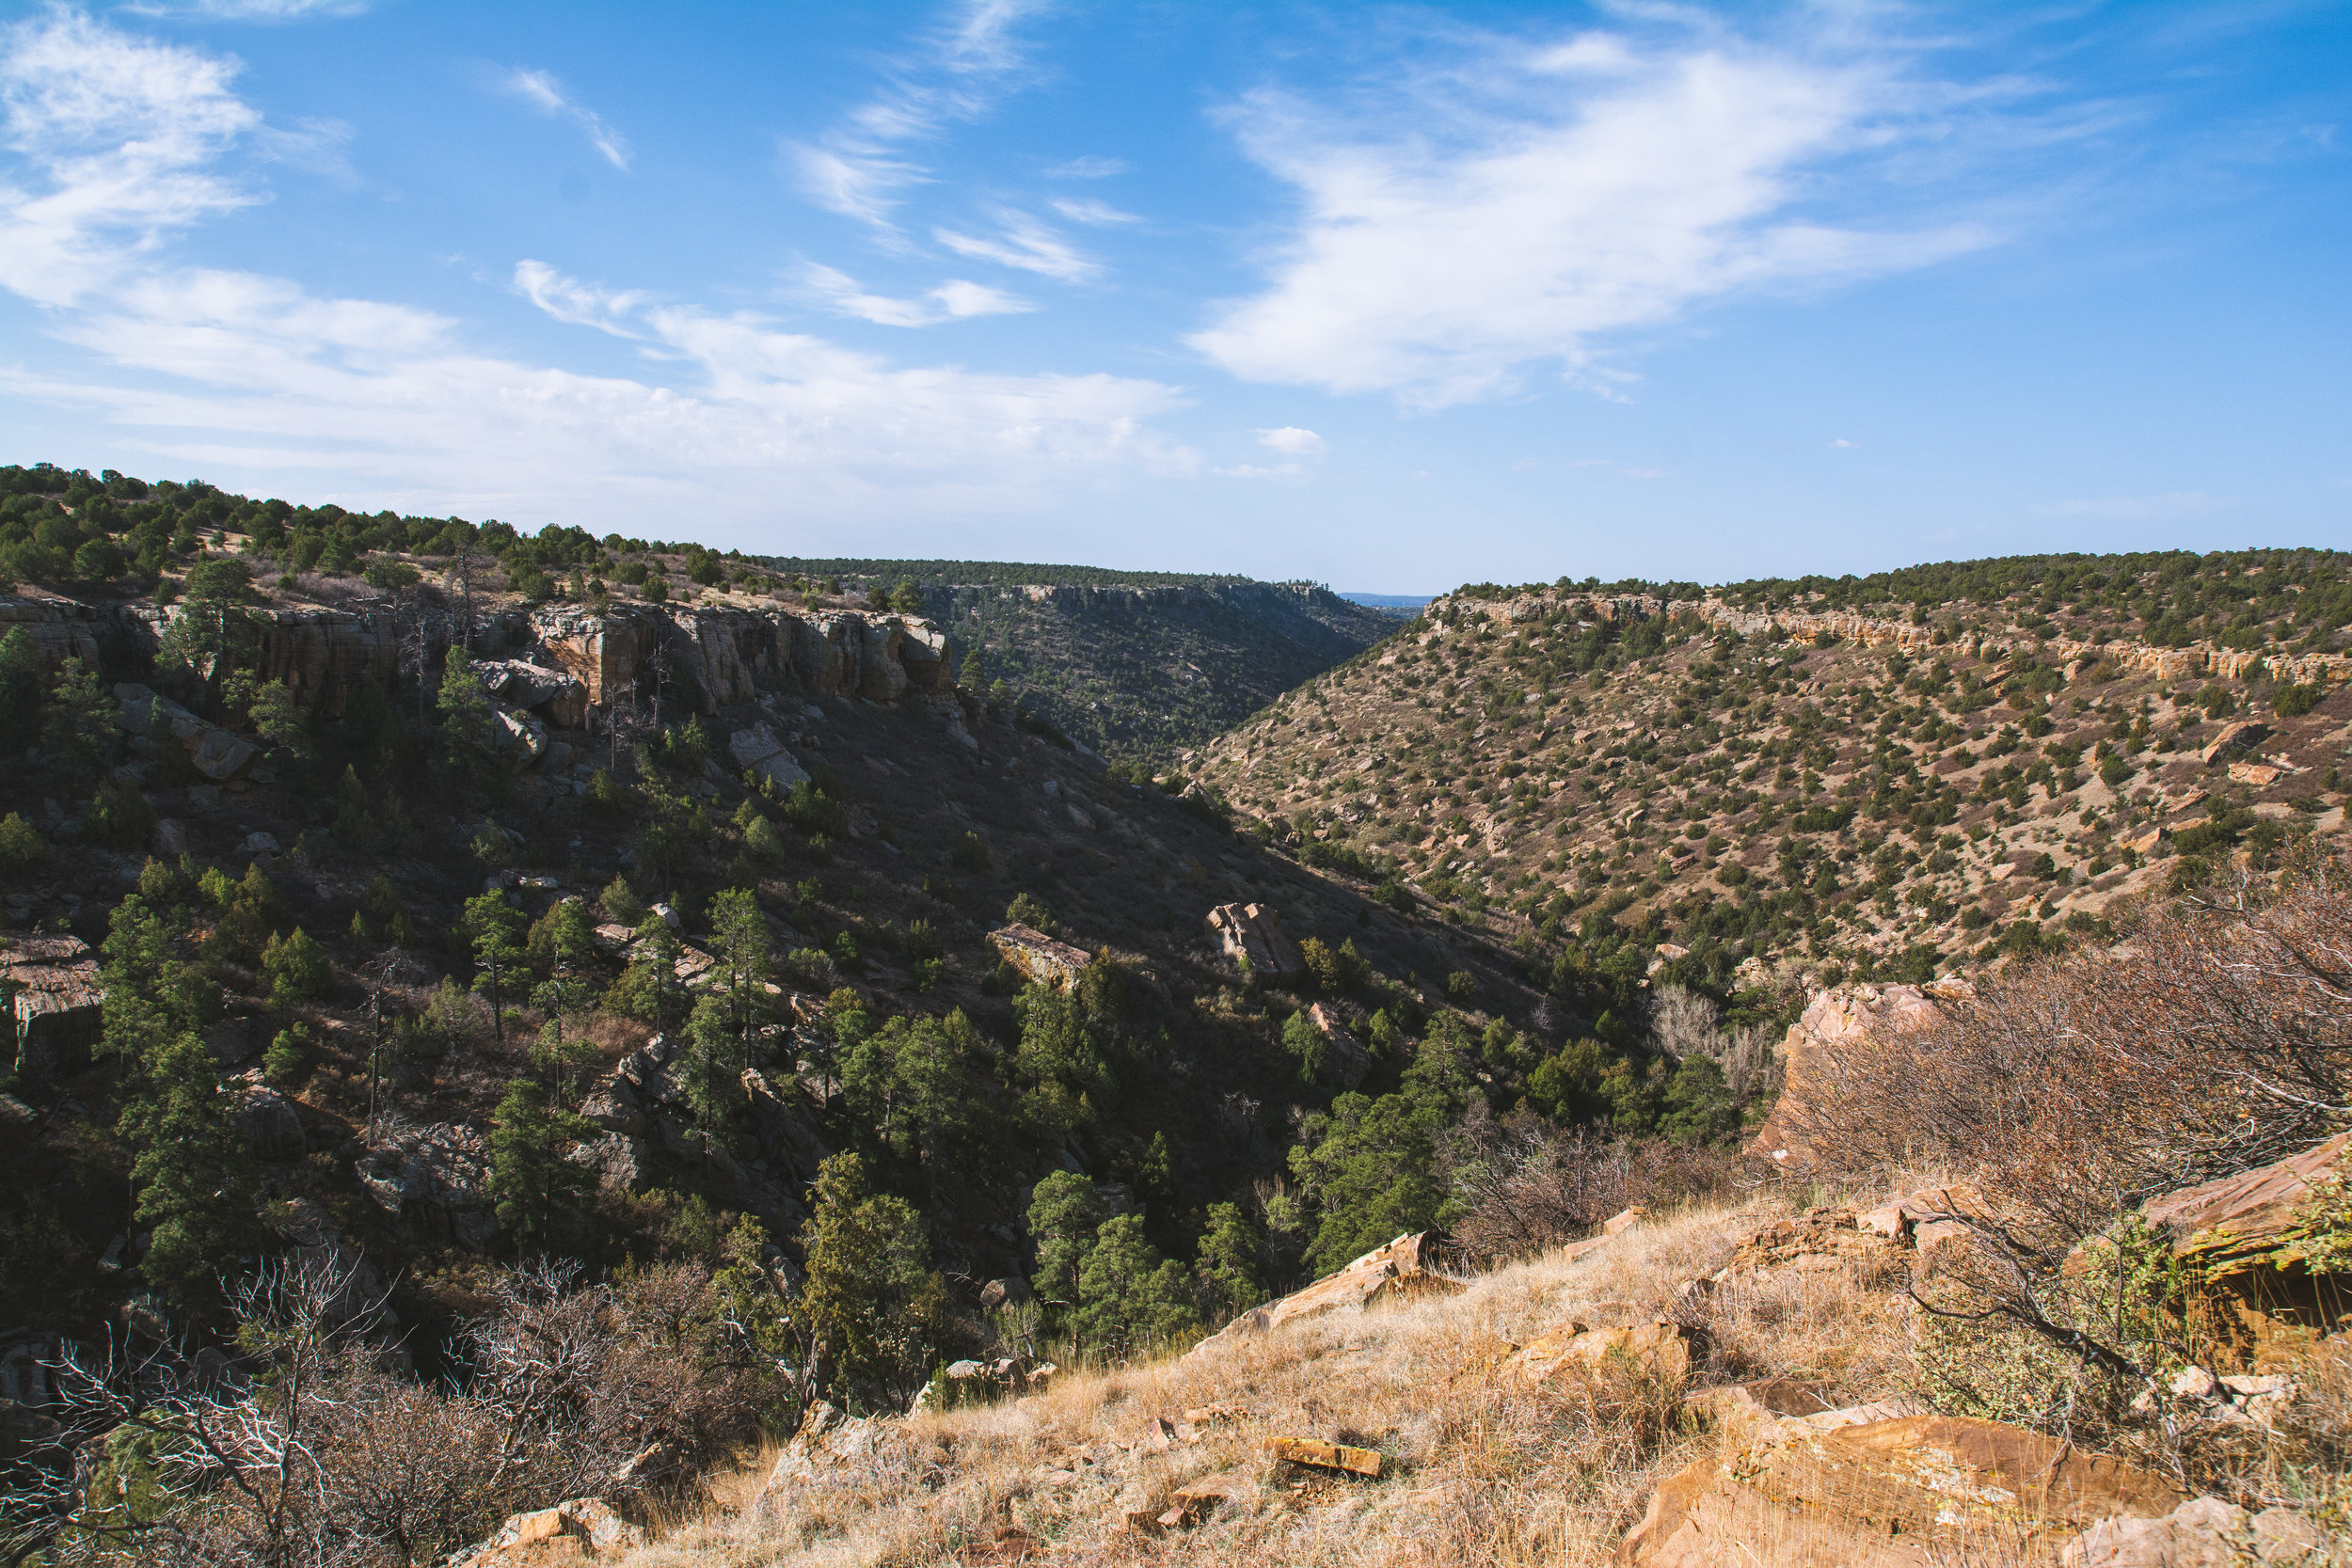 Another part of Canyon